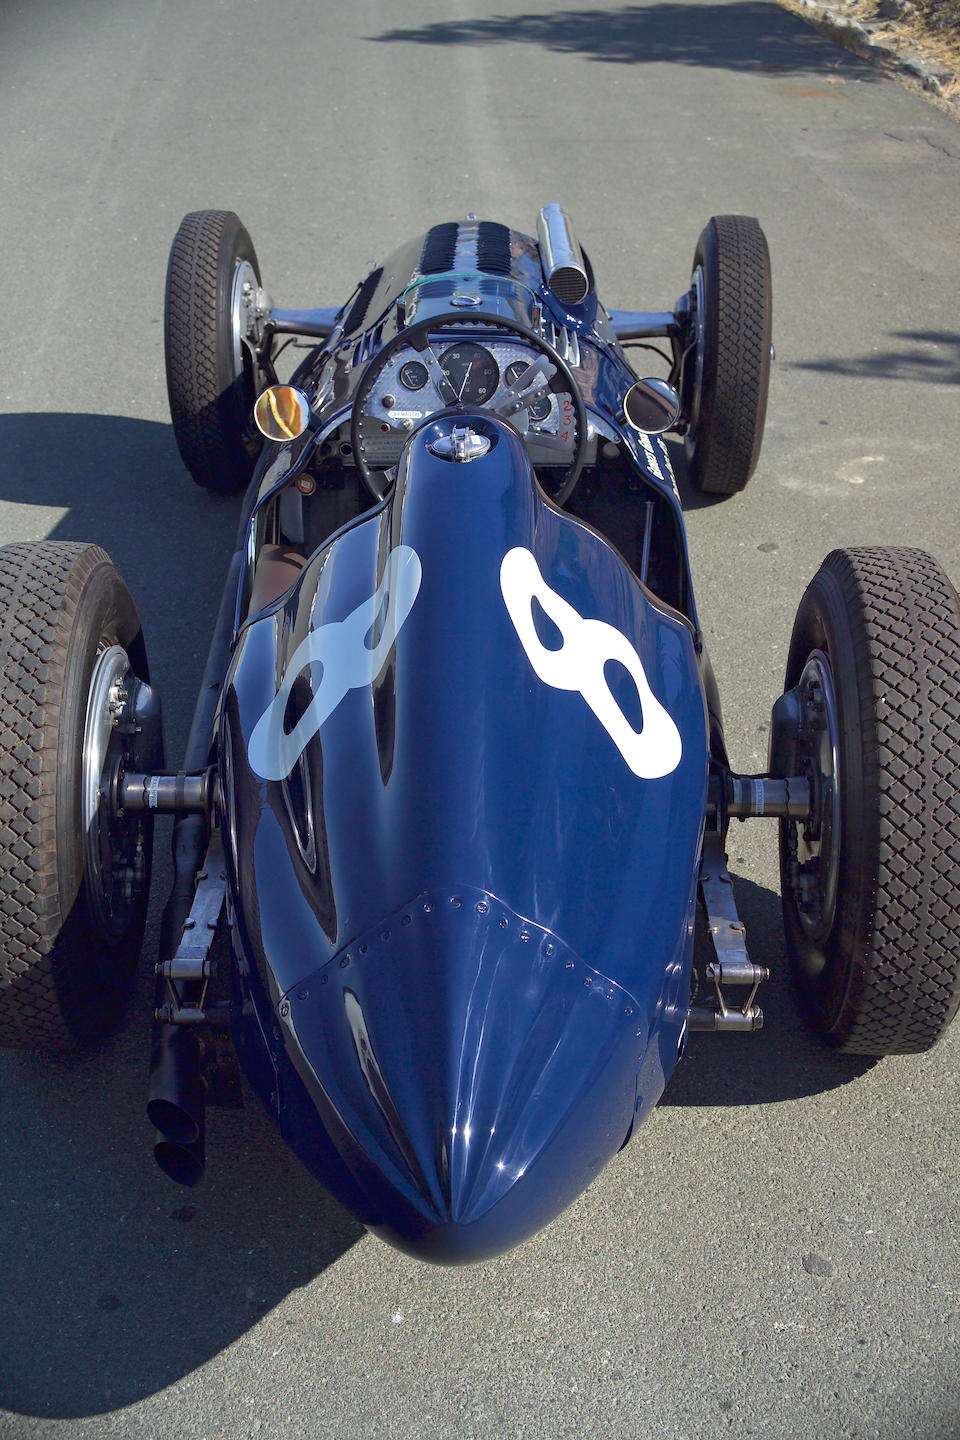 The Ex-Georges Grignard/Jacques Swaters 'Ecurie Belgique', 1950 Paris Grand Prix winning,1949 Talbot-Lago Type 26 Course Formula 1 Racing monoplace  Chassis no. 110 006 Engine no. 45109